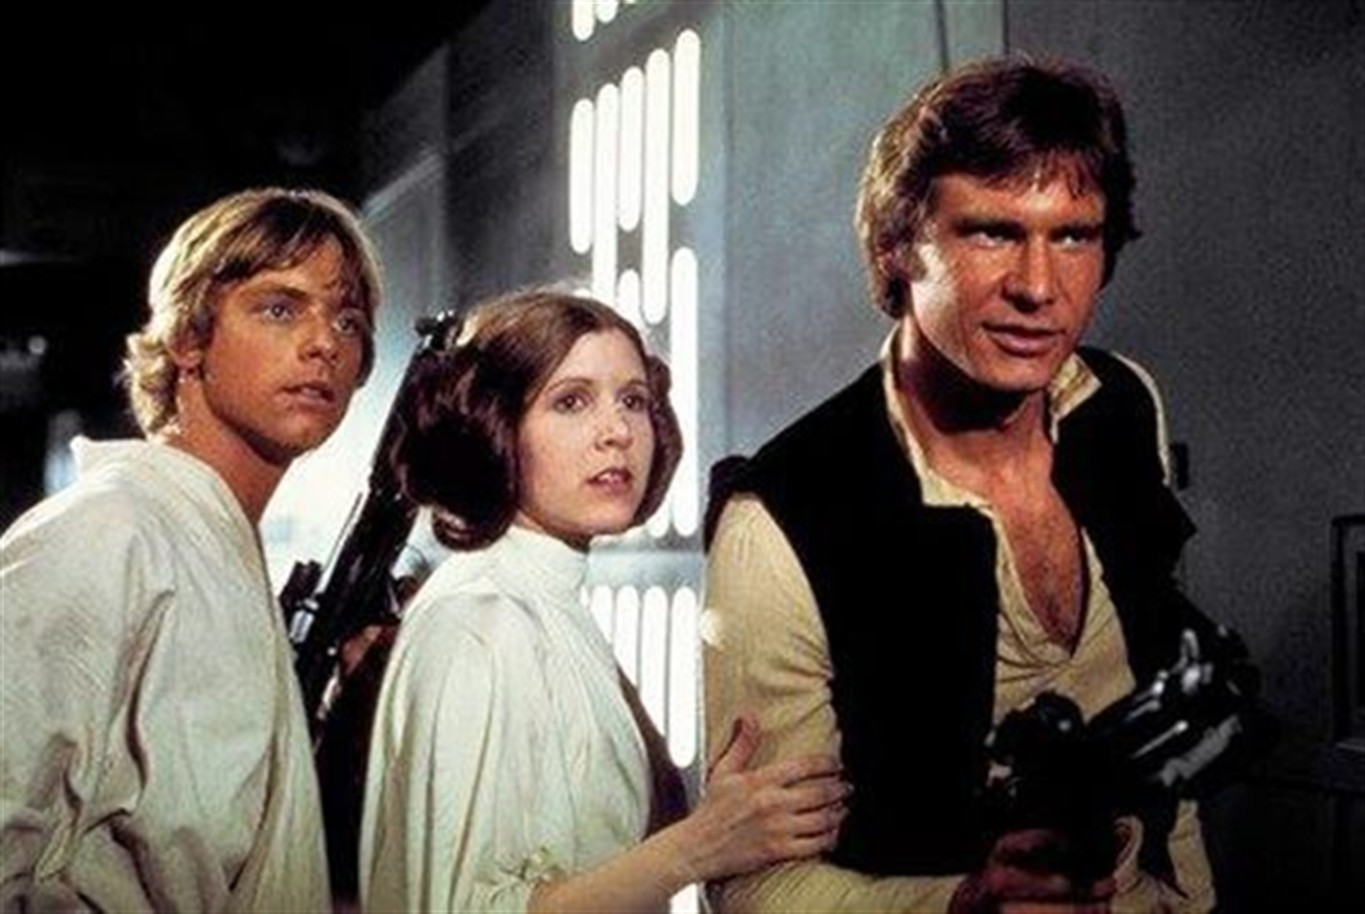 Trailer for new Star Wars film unveiled